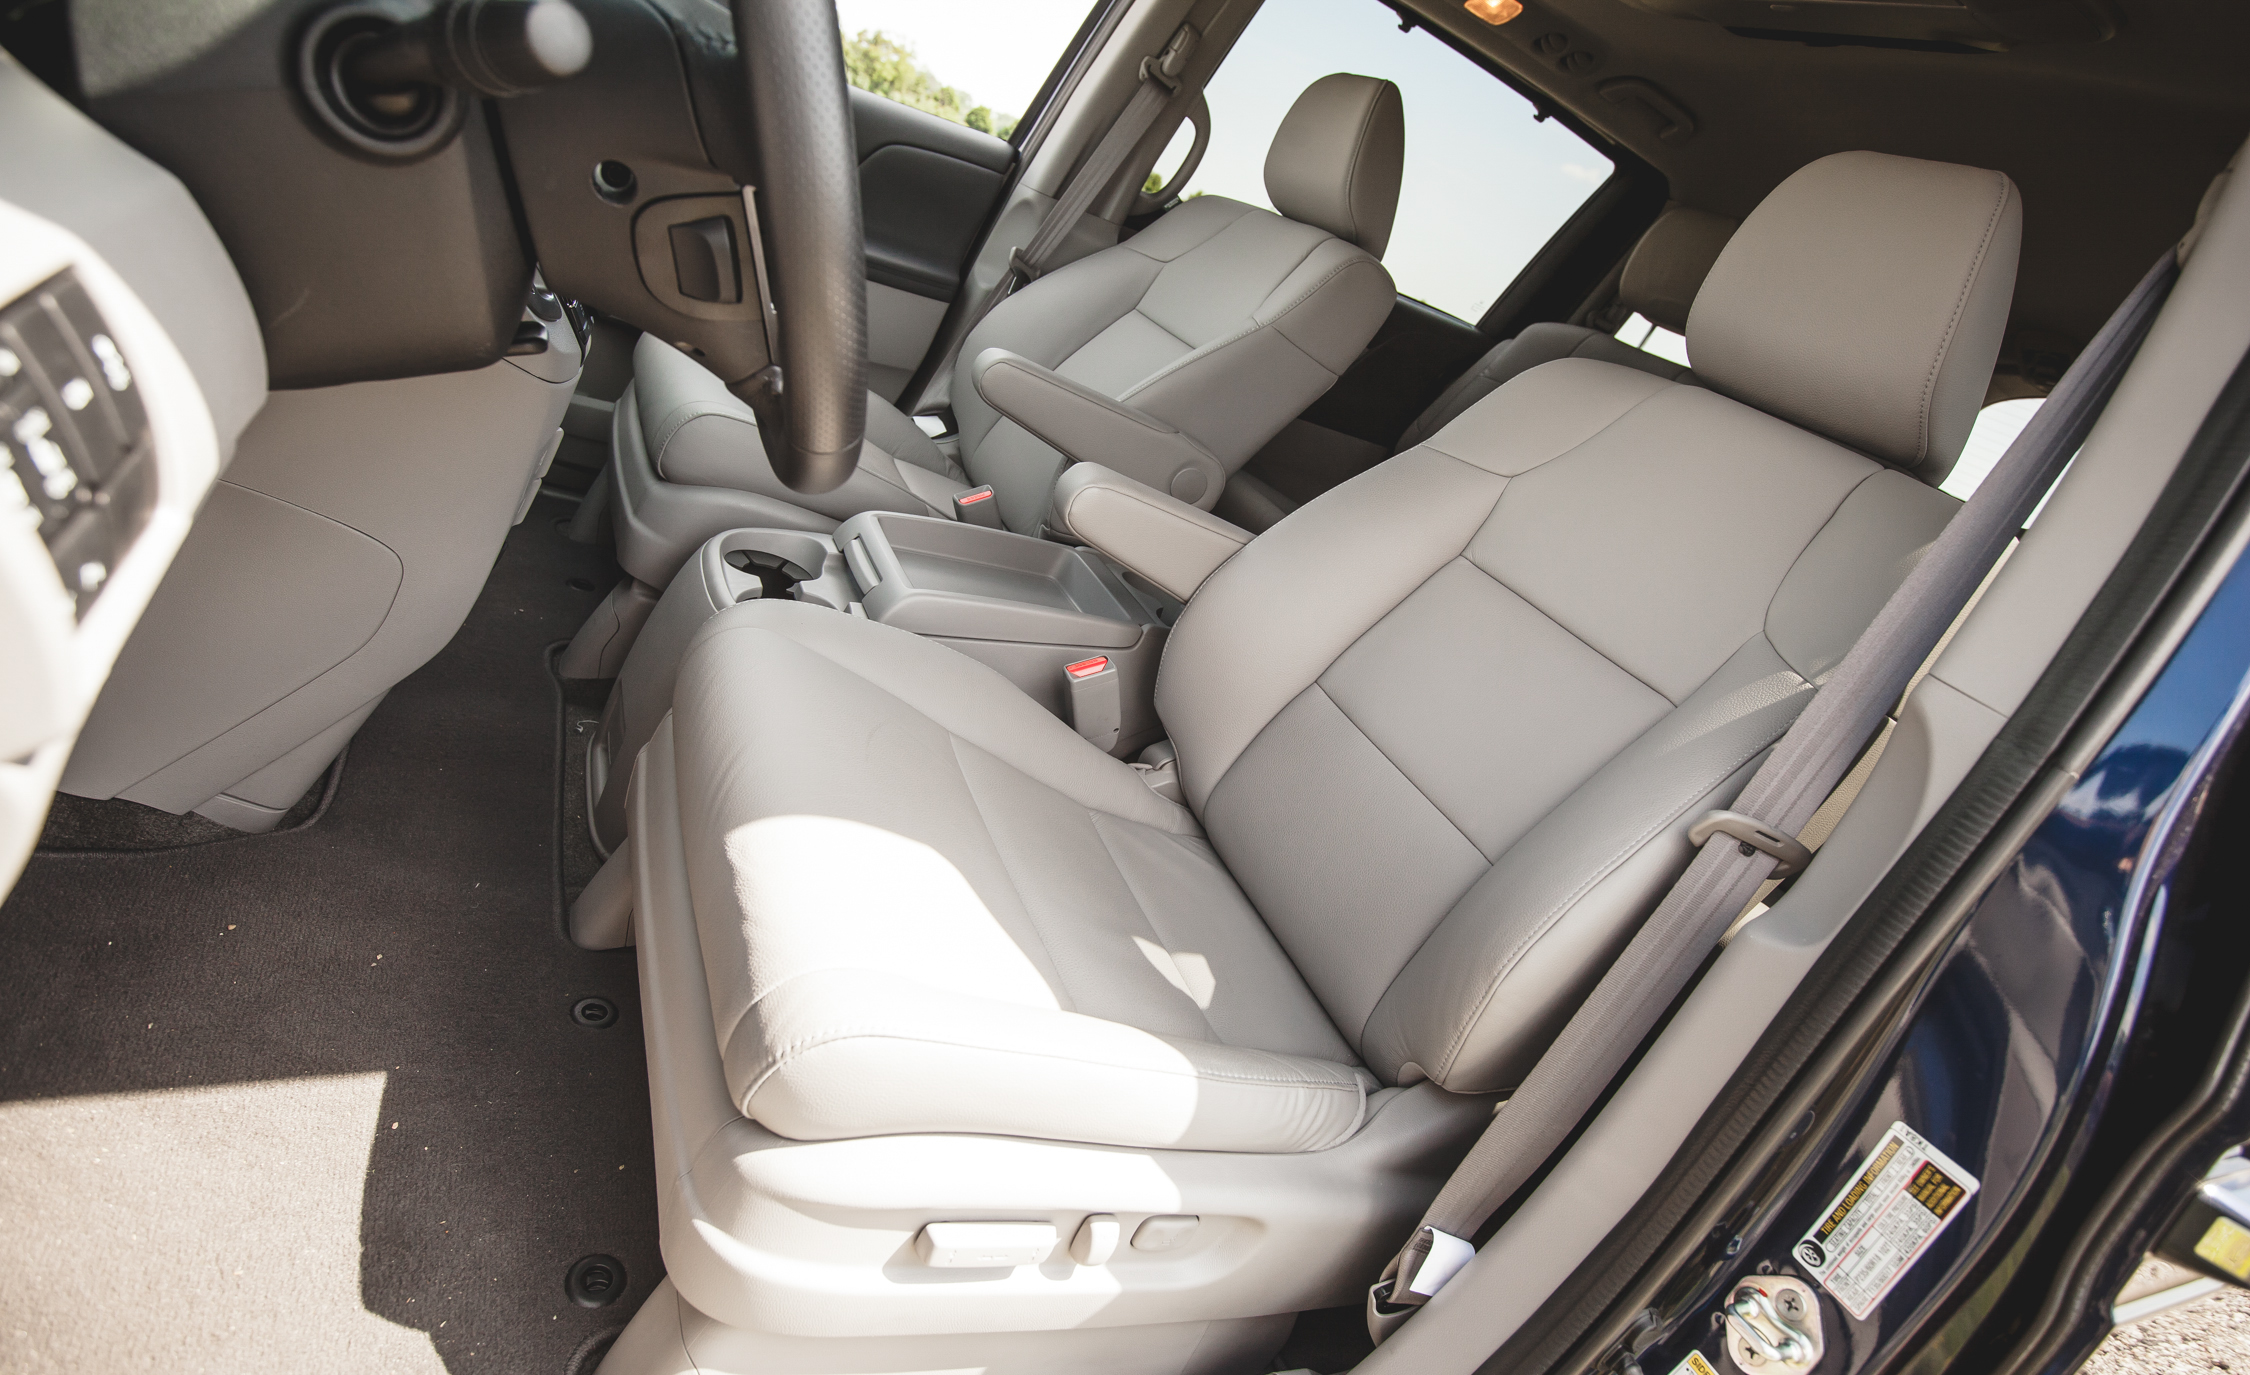 2014 Honda Odyssey Touring Elite Interior (View 10 of 19)